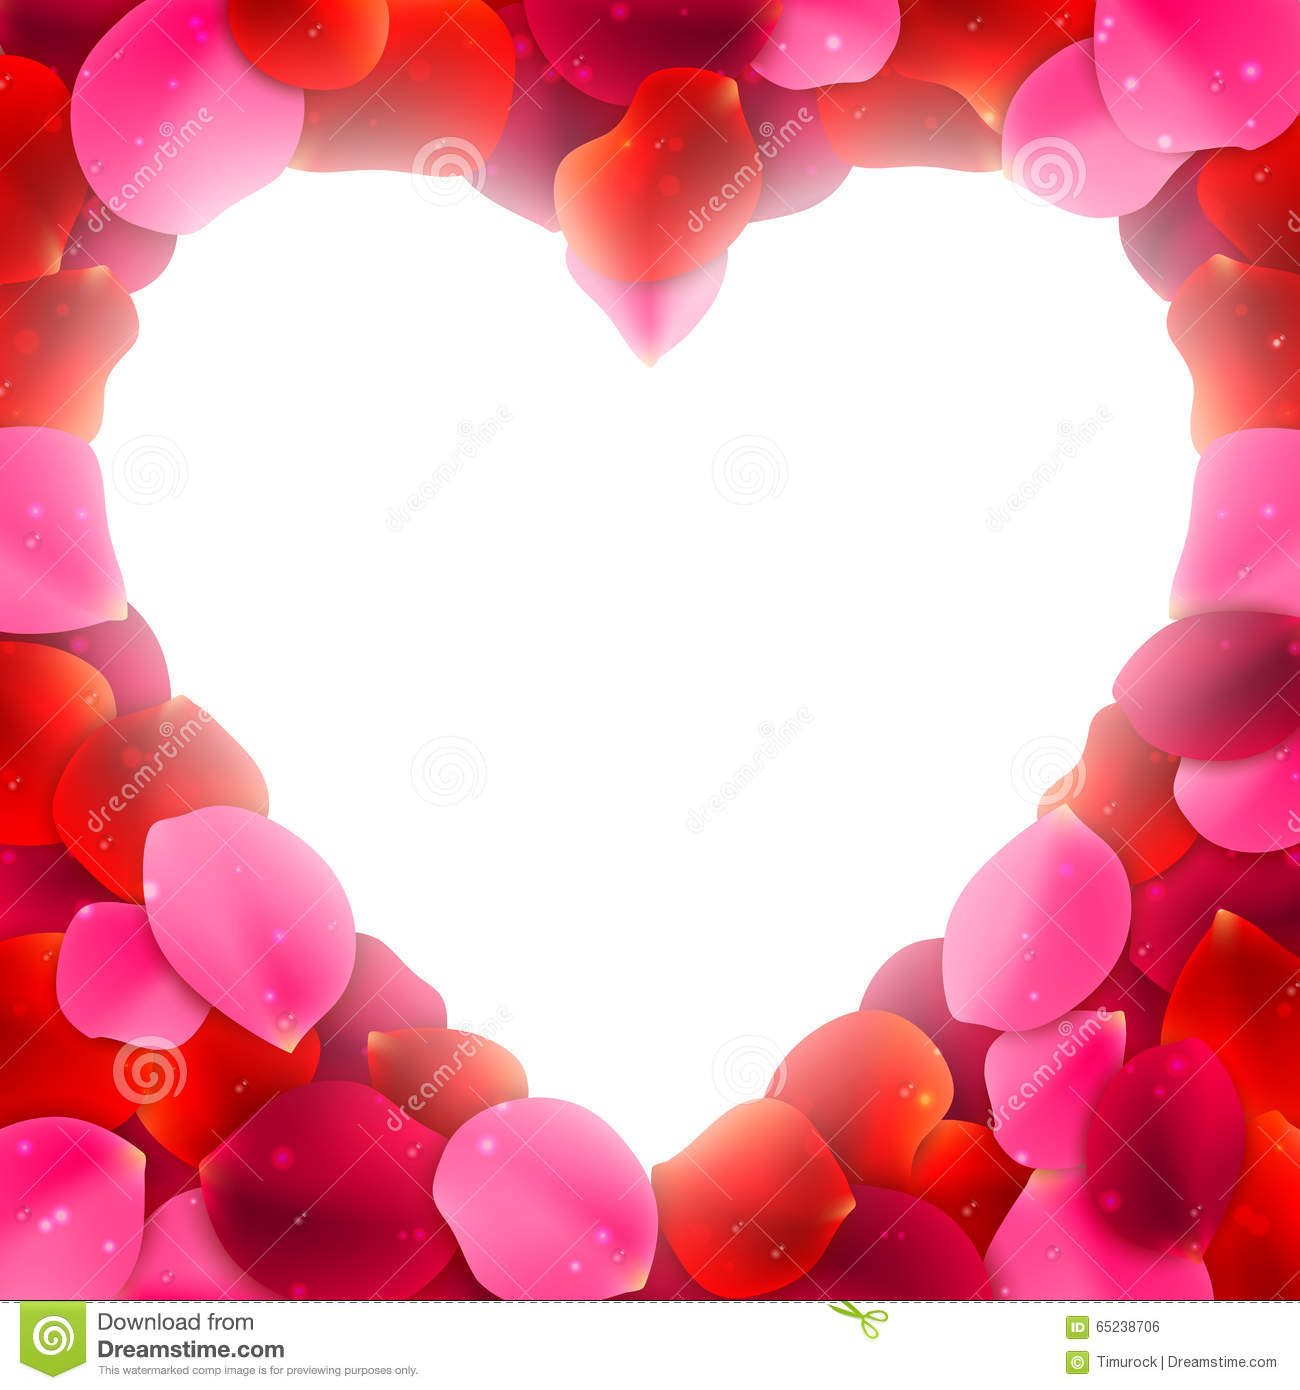 rose petals frame royalty free stock image